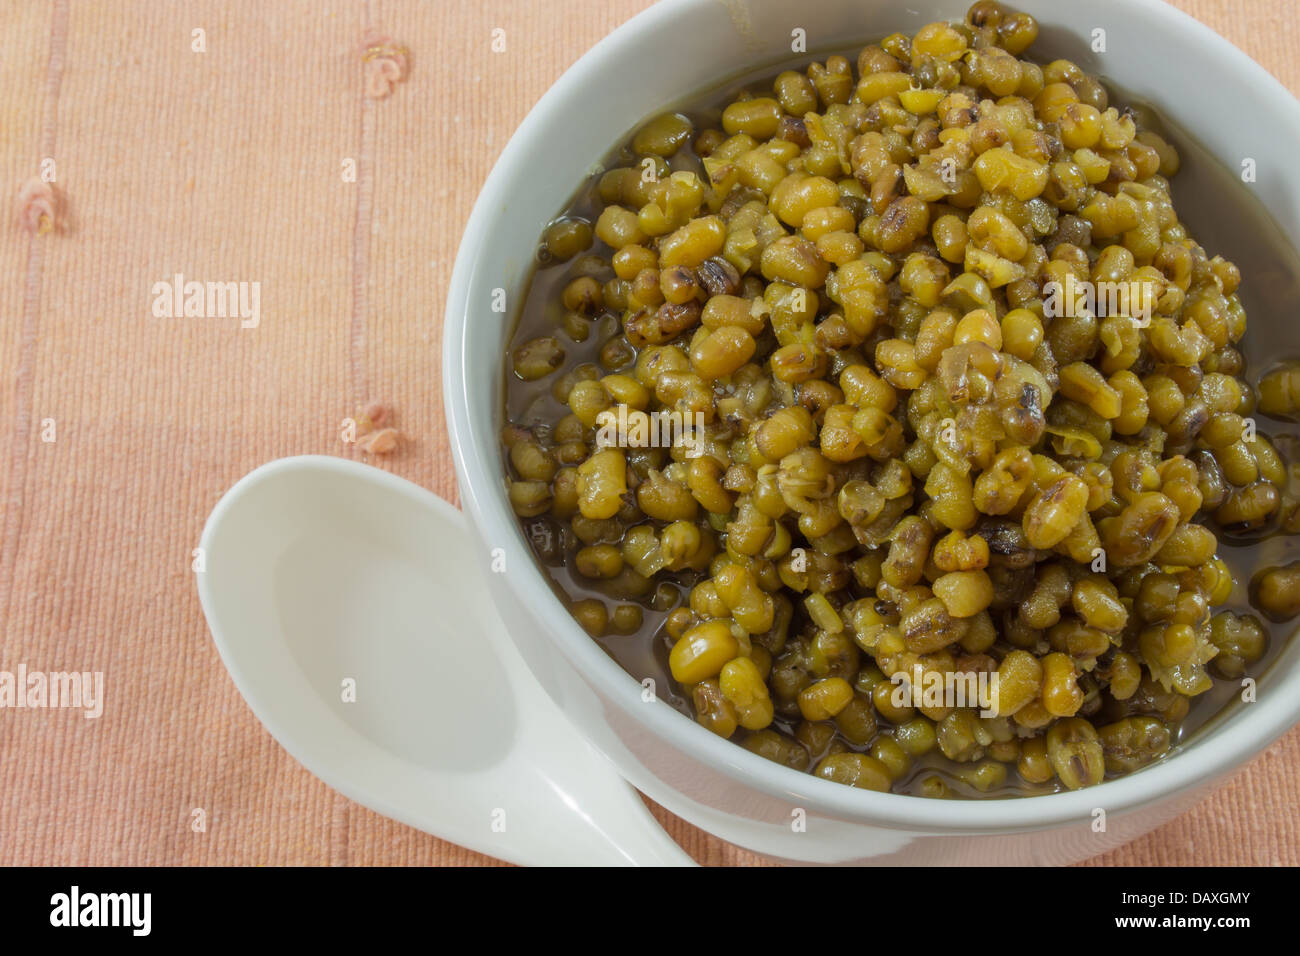 Mungbeans in light syrup or Green bean in syrup in a cup Deserts of Thailand - Stock Image